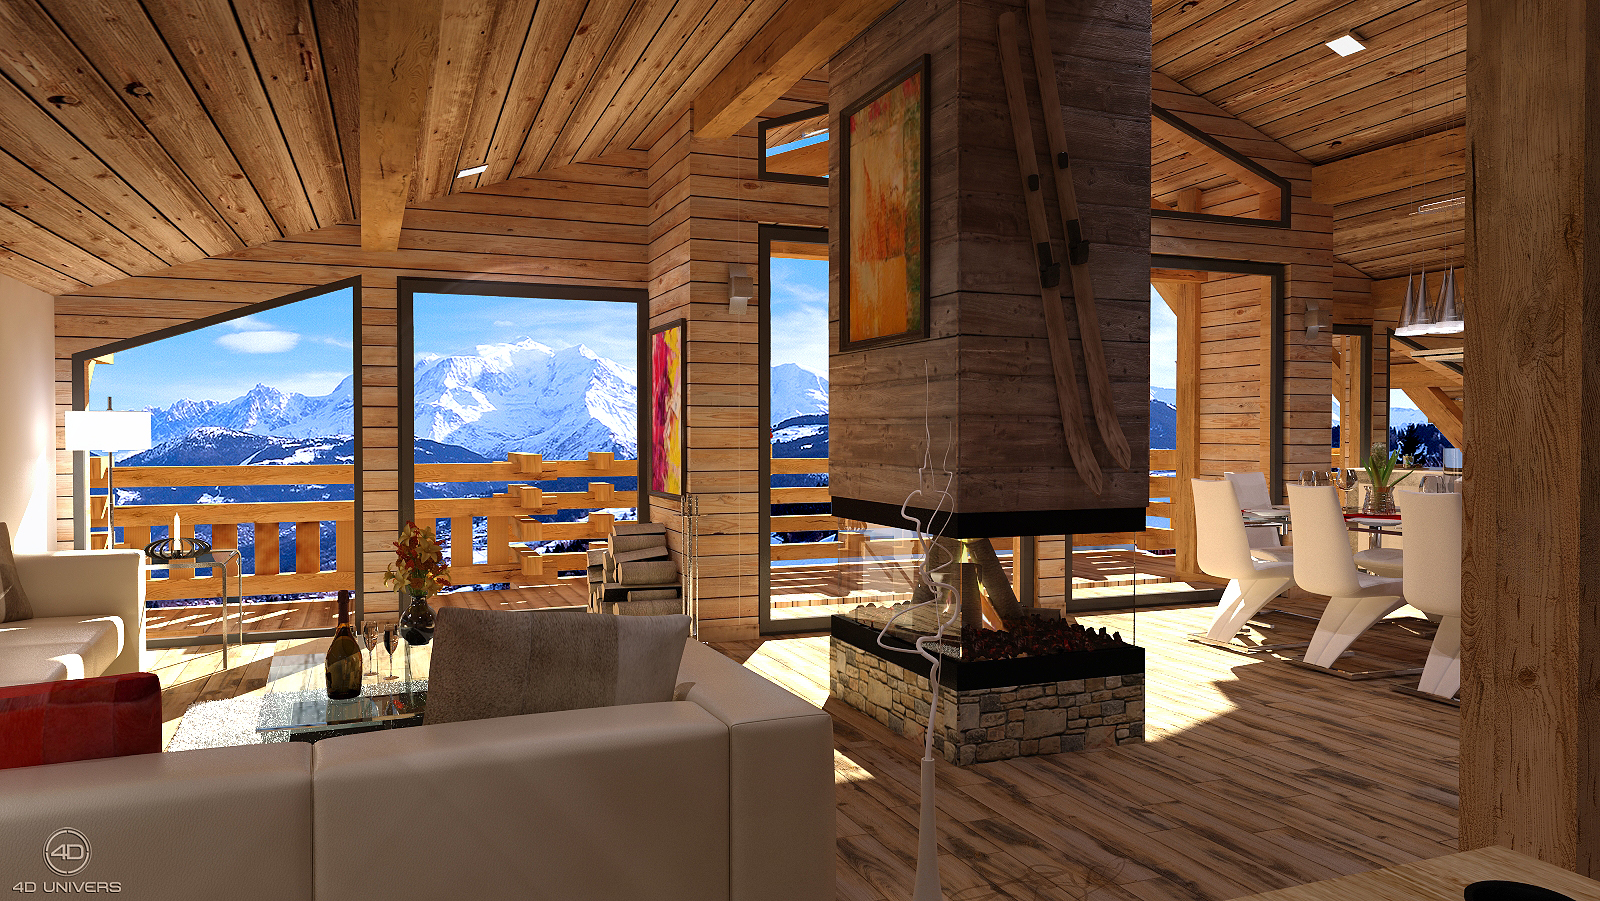 Chalet meg ve 4d univers studio animation 3d for Decoration interieur chalet